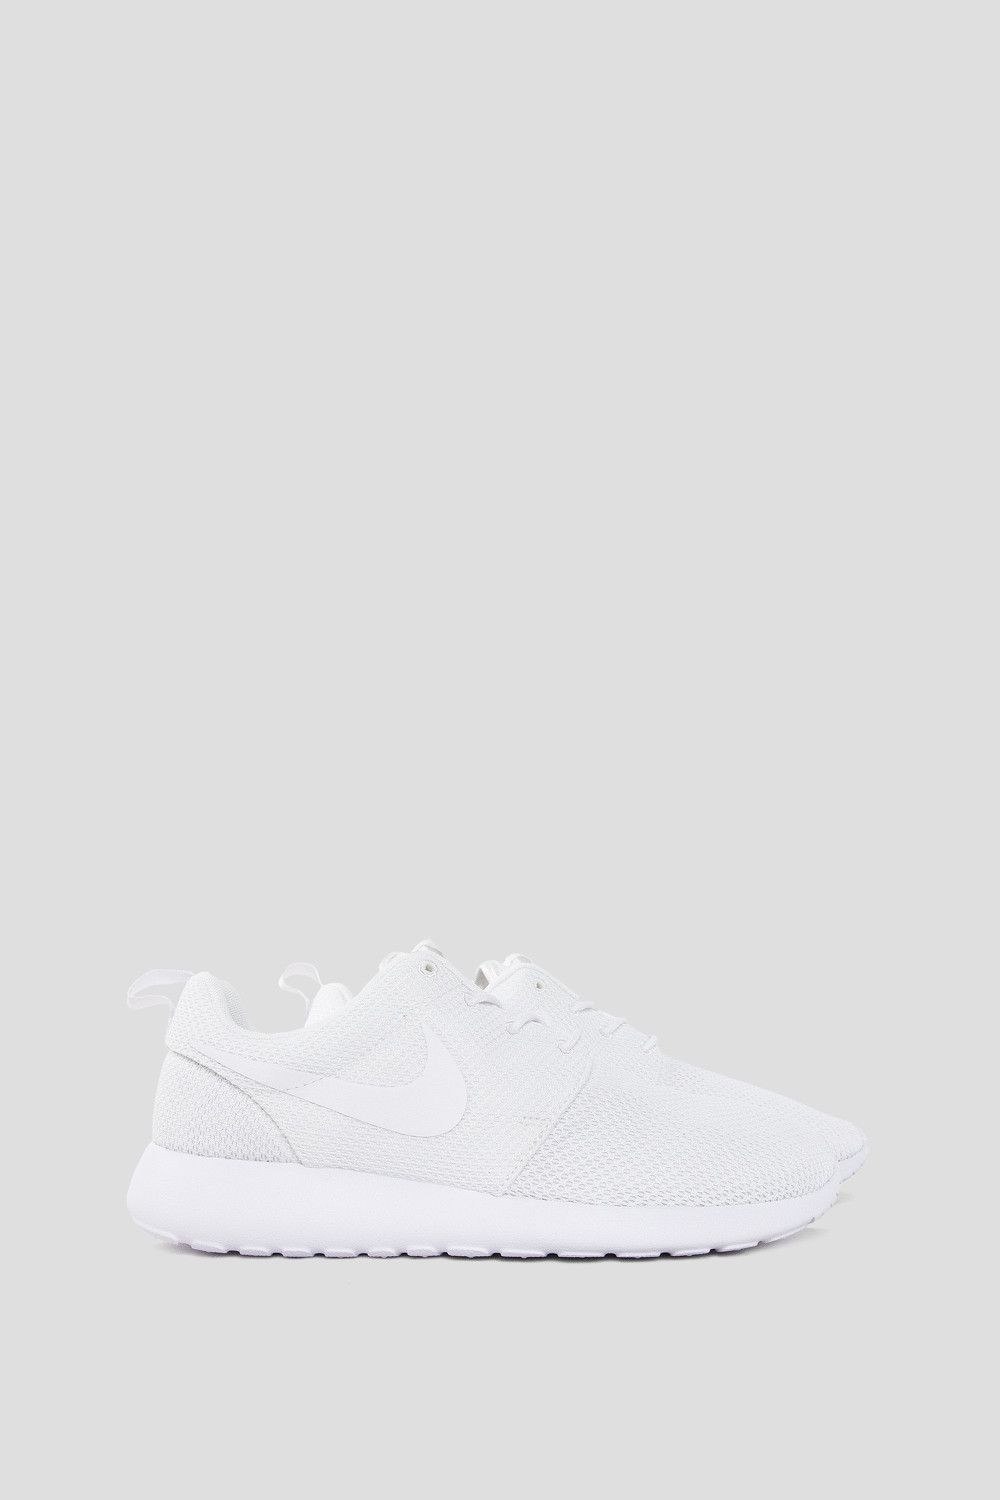 569cdb31411e ... the Nike Roshe One Mens Shoe offers breathability and lightweight  impact protection. - Product Code  511881-112 - Color  White   Black -  Metallic Sil